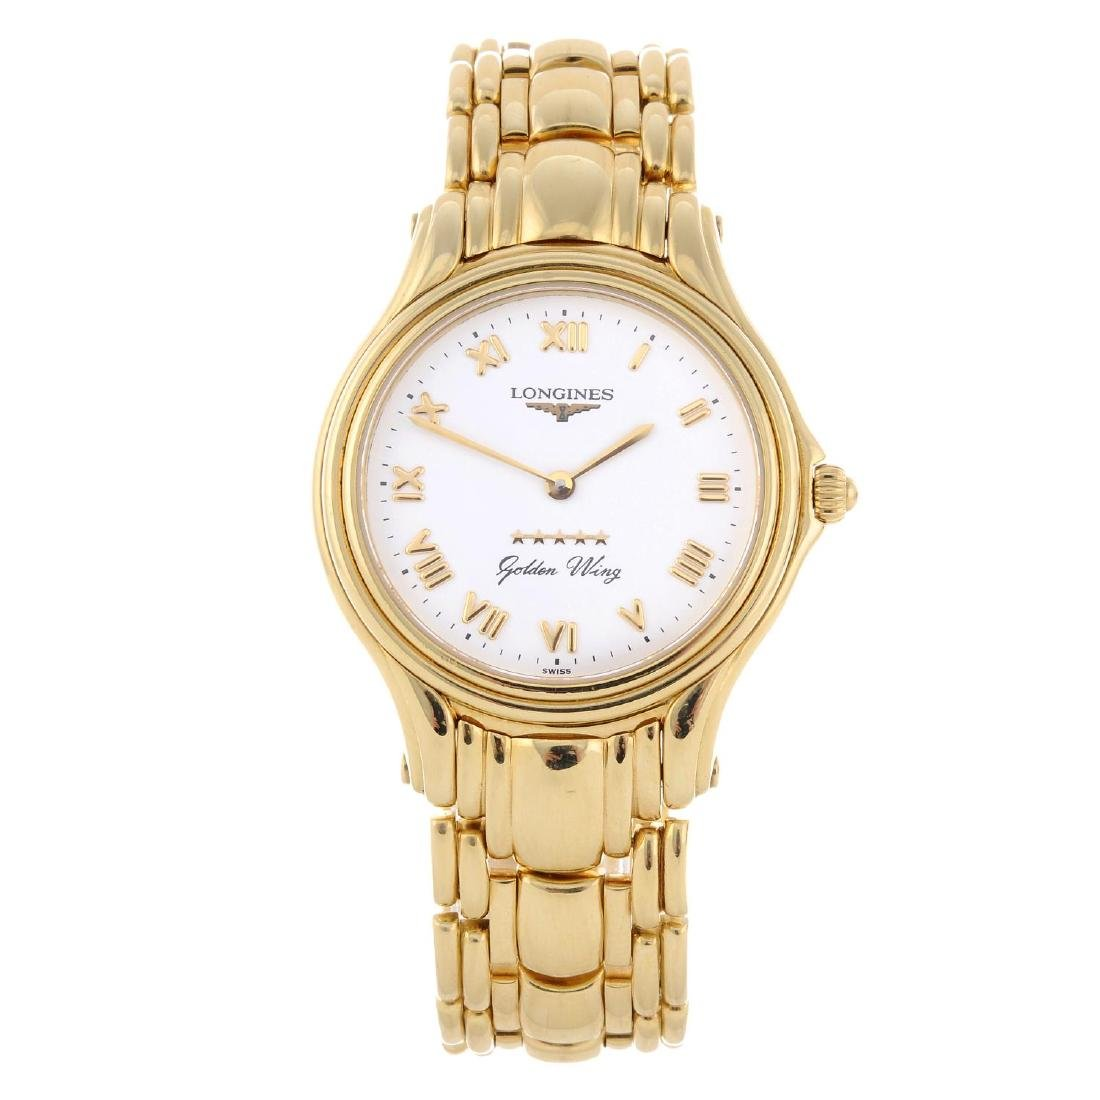 LONGINES - a gentleman's Golden Wing bracelet watch.